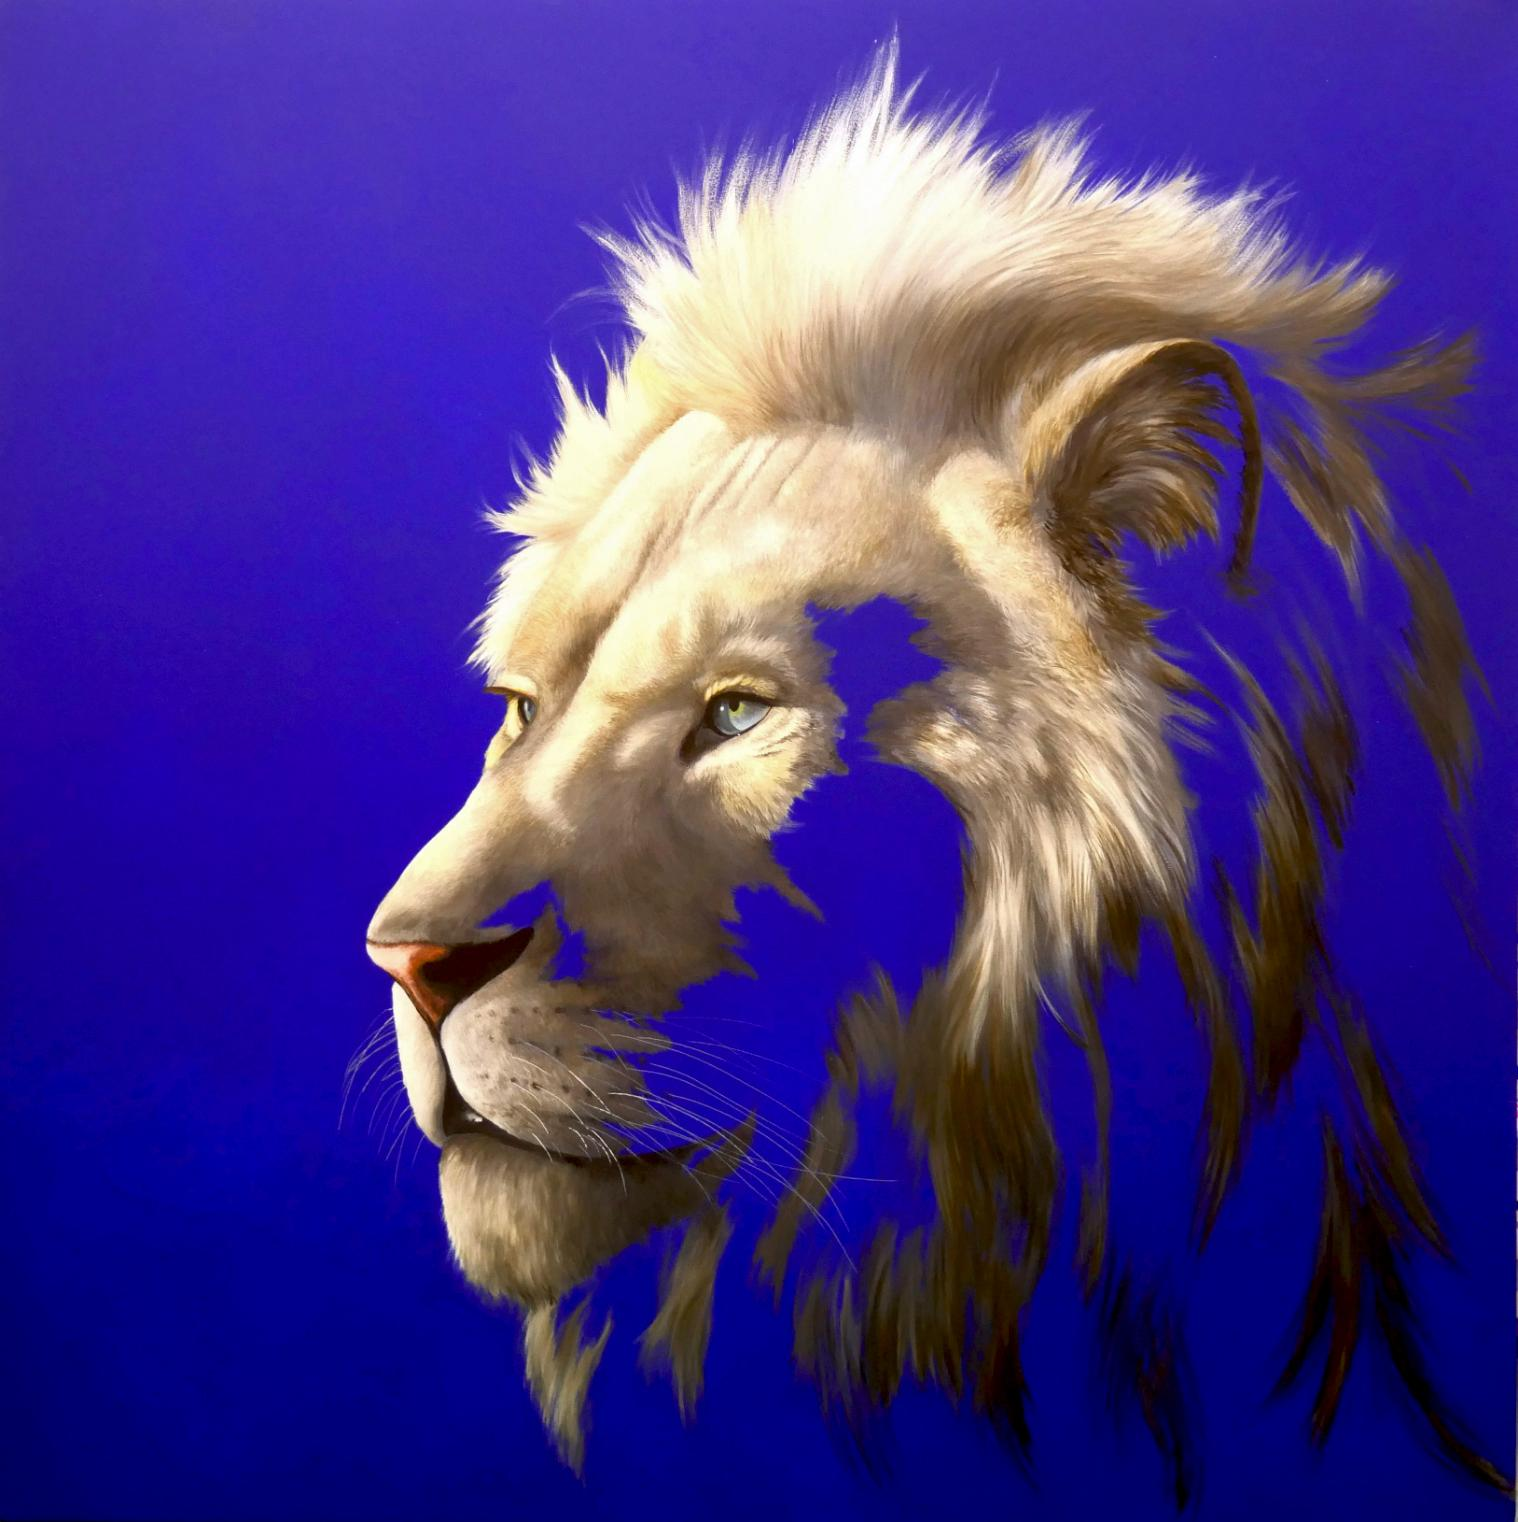 King of a Fading Kingdom by Louise McNaught - Lion Animal Contemporary Print